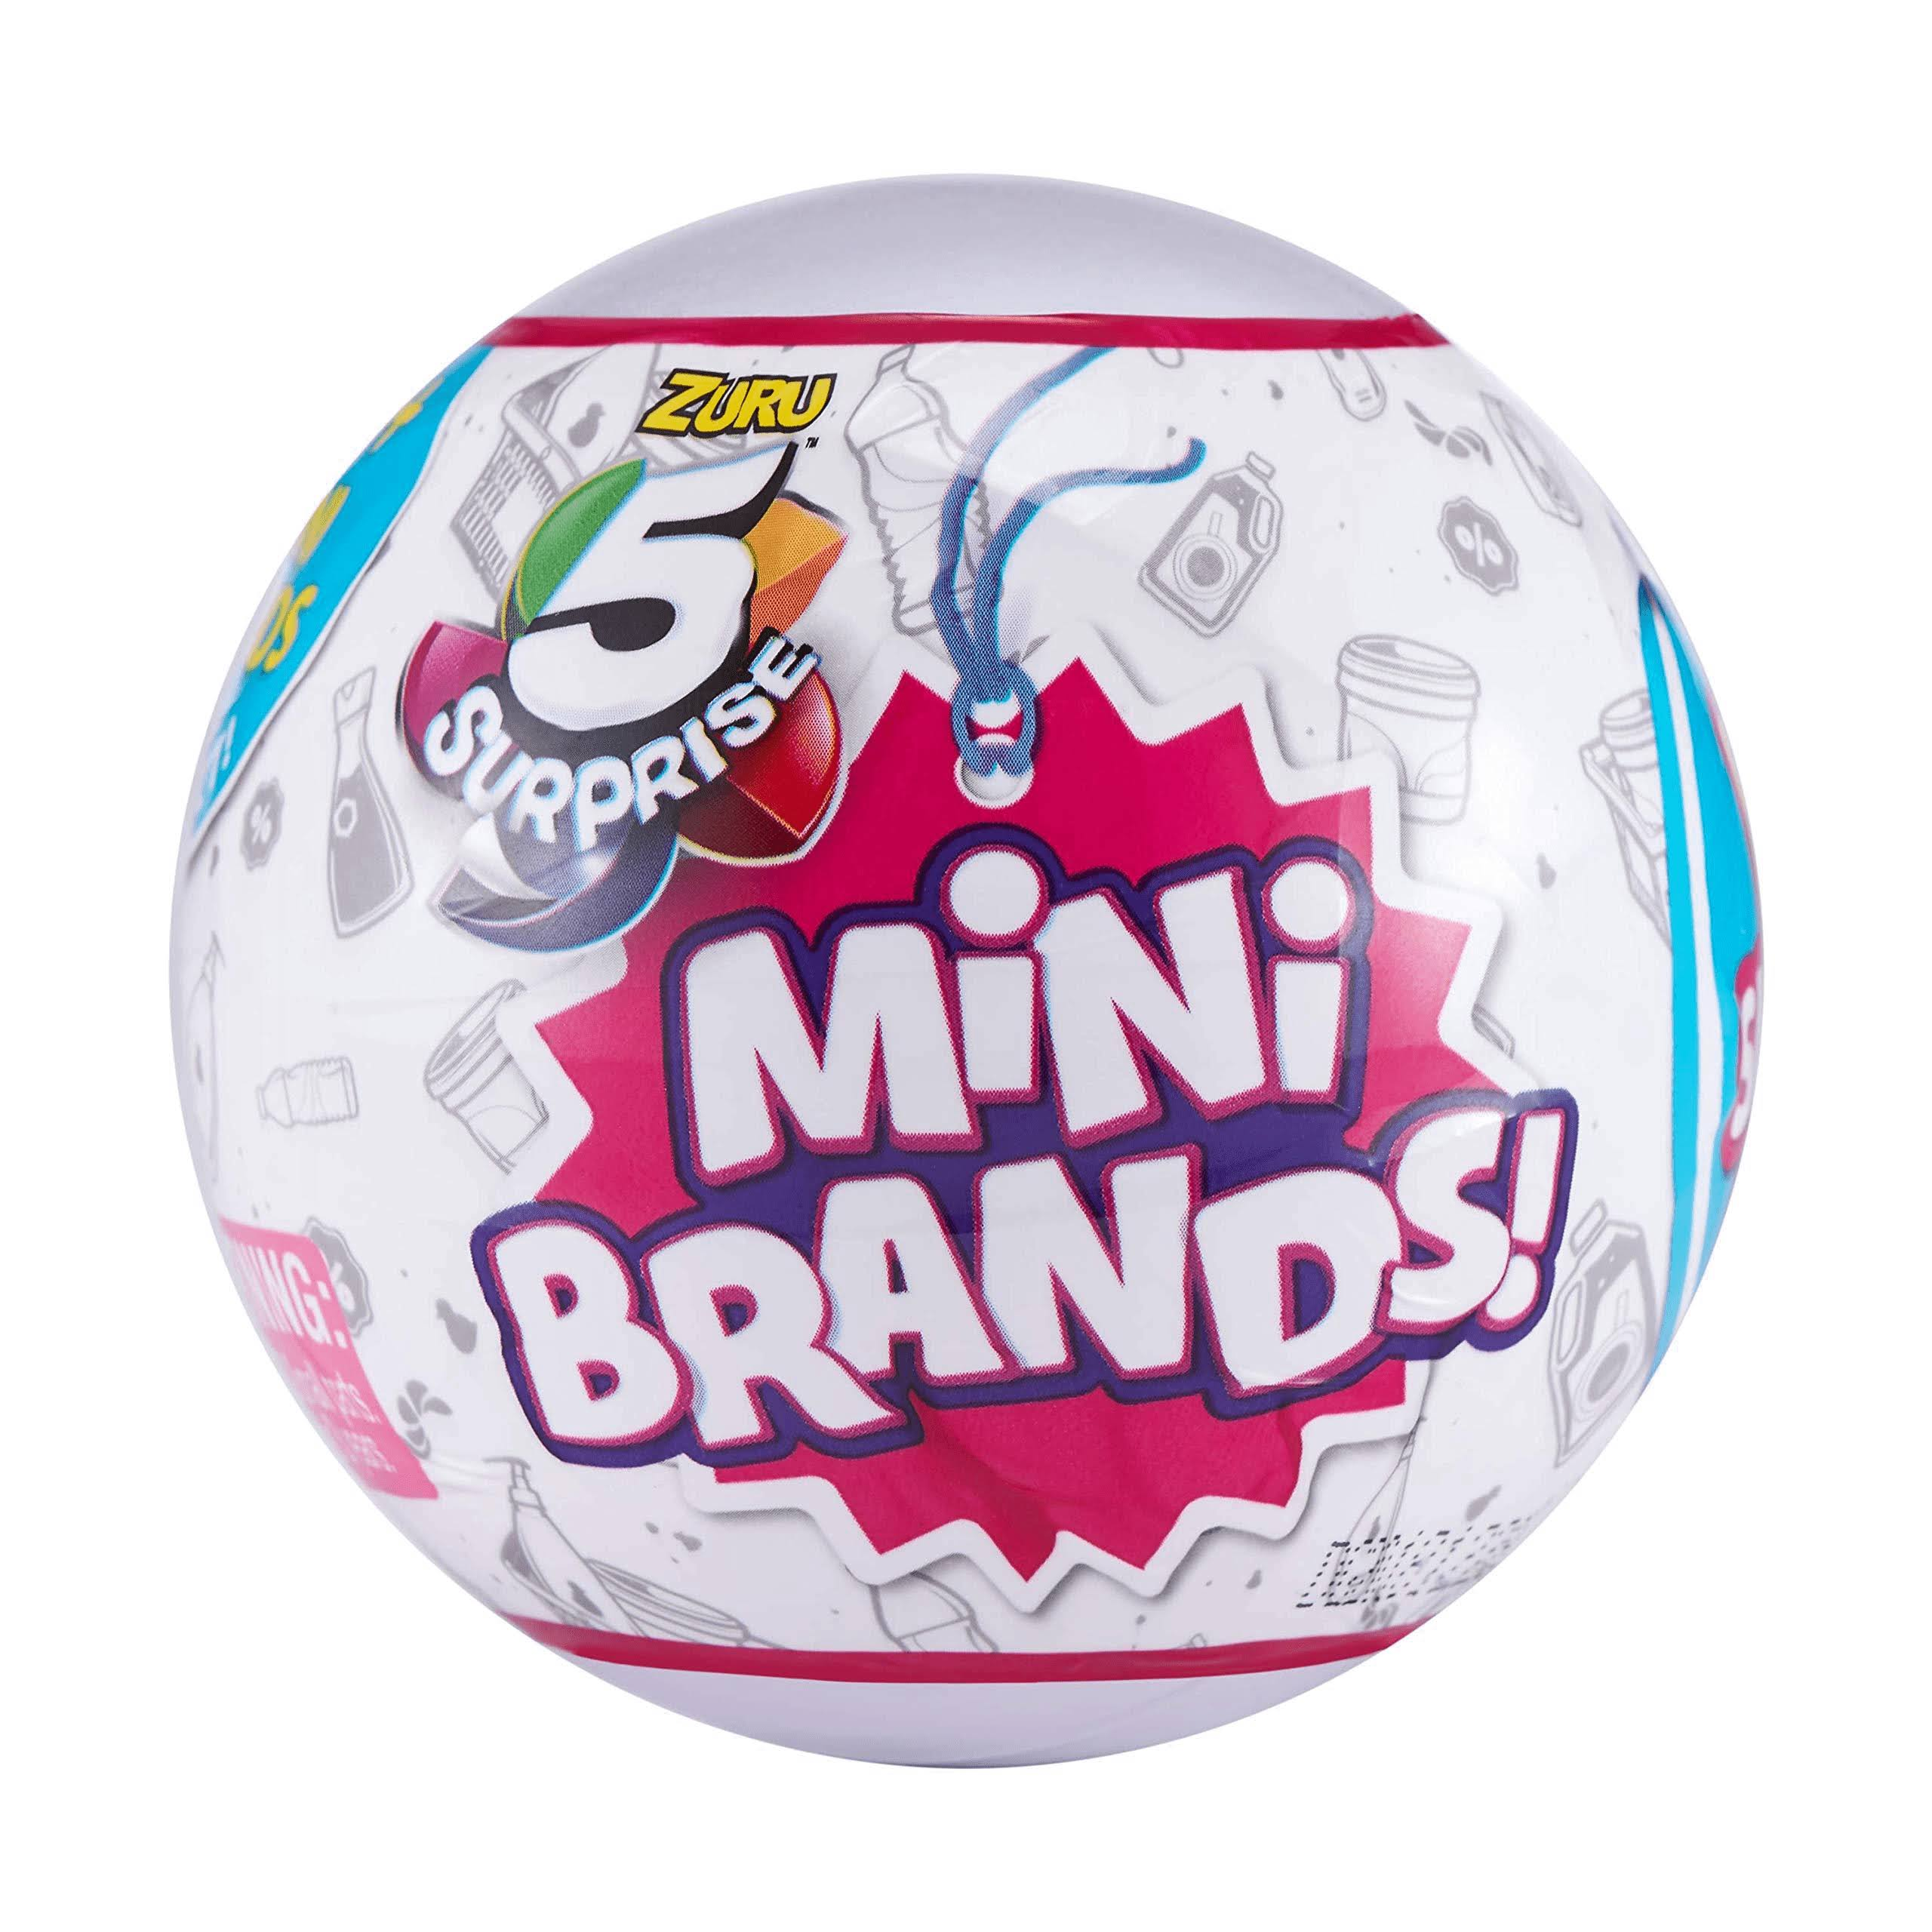 Zuru Mini Brands 5-surprise Ball